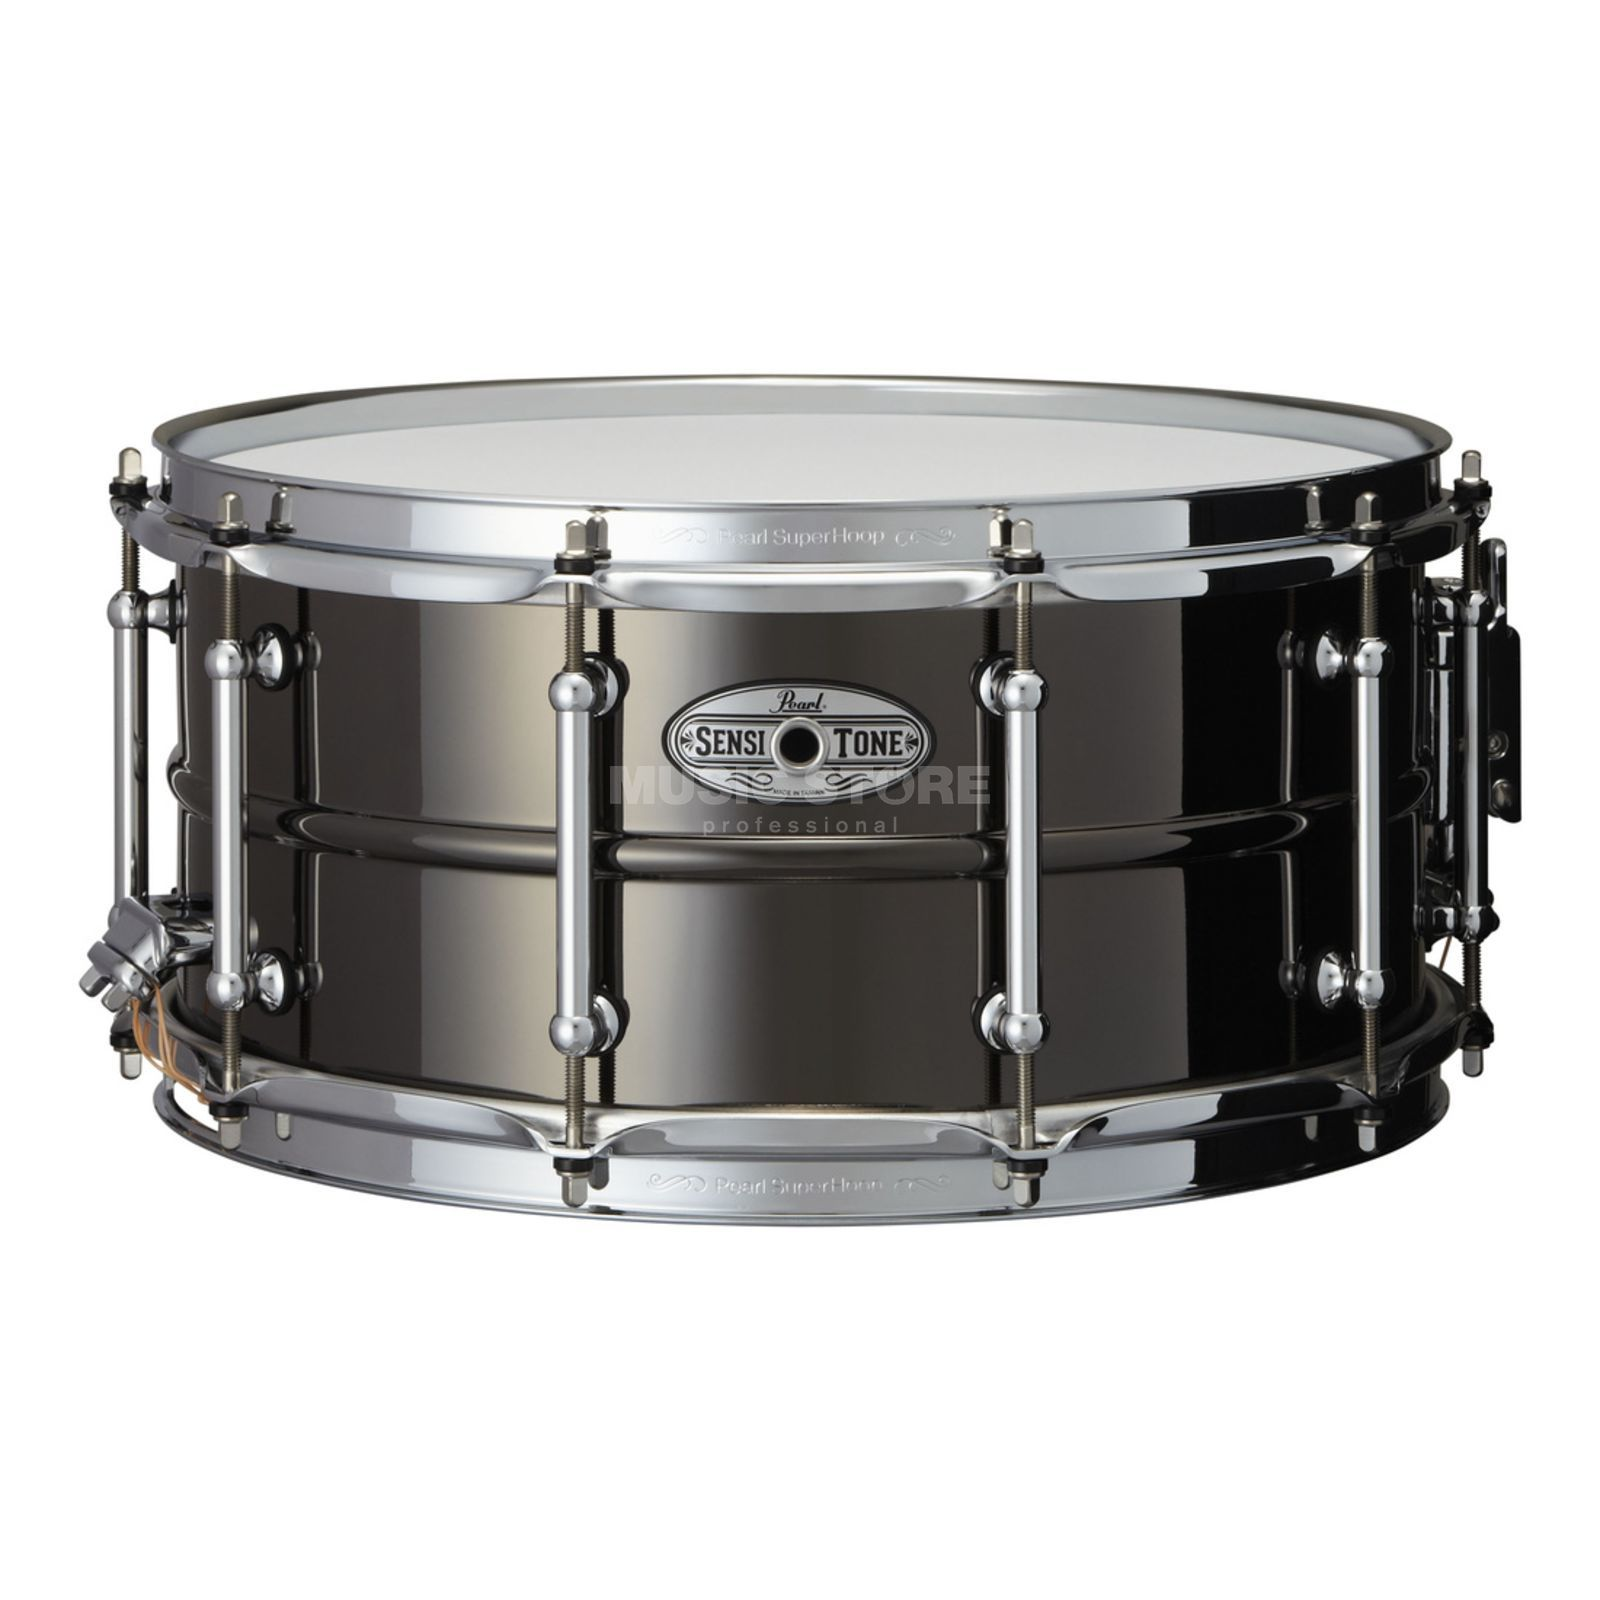 "Pearl Sensitone Snare STA-1465BR, 14""x6.5"", Black Nickel / Brass Produktbillede"